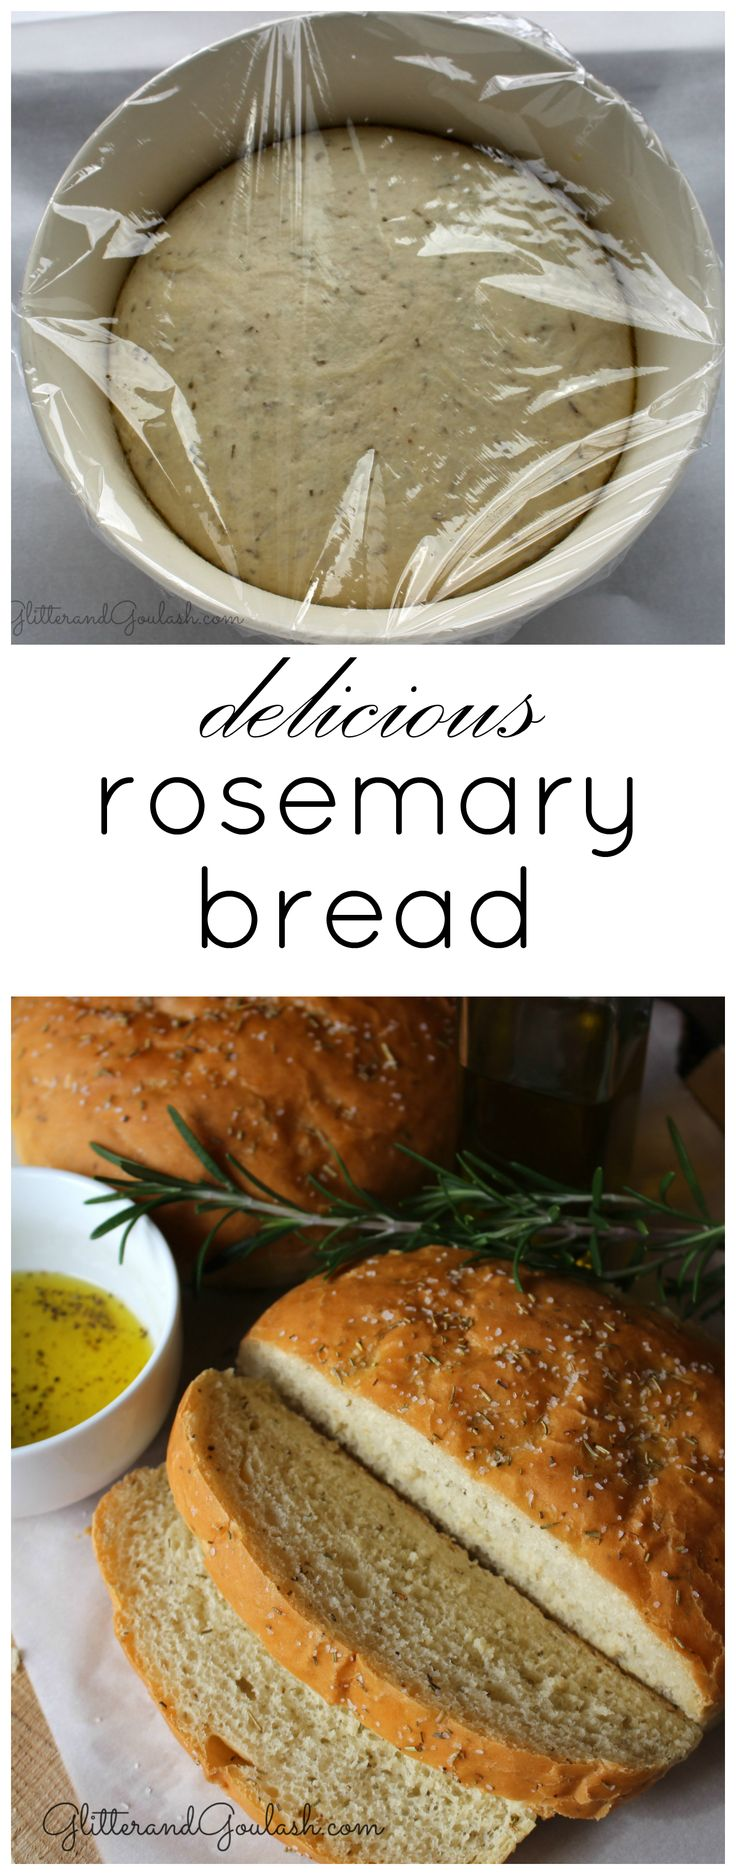 Grill Rosemary Bread- Oh my gosh this was the best rosemary bread ...